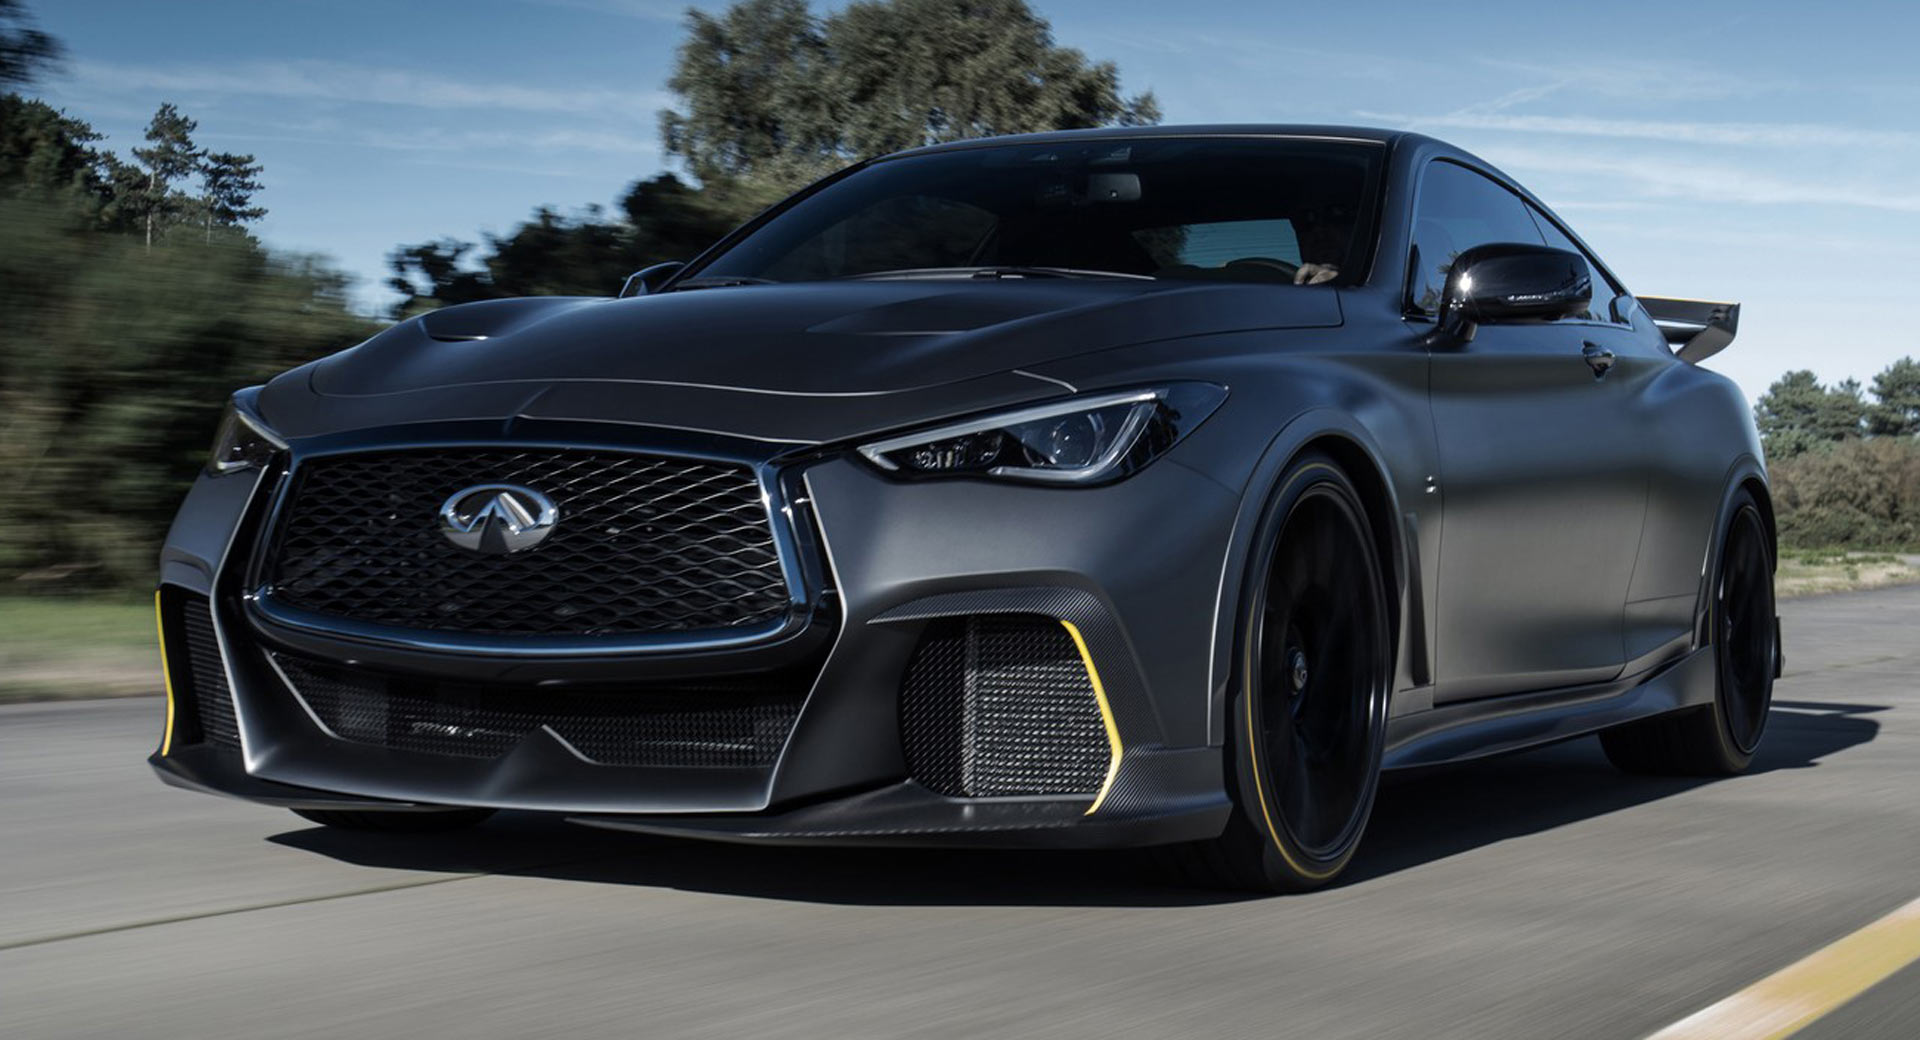 Infiniti Thinks Project Black S Could Be Sold In U.S. In Limited Numbers | Carscoops